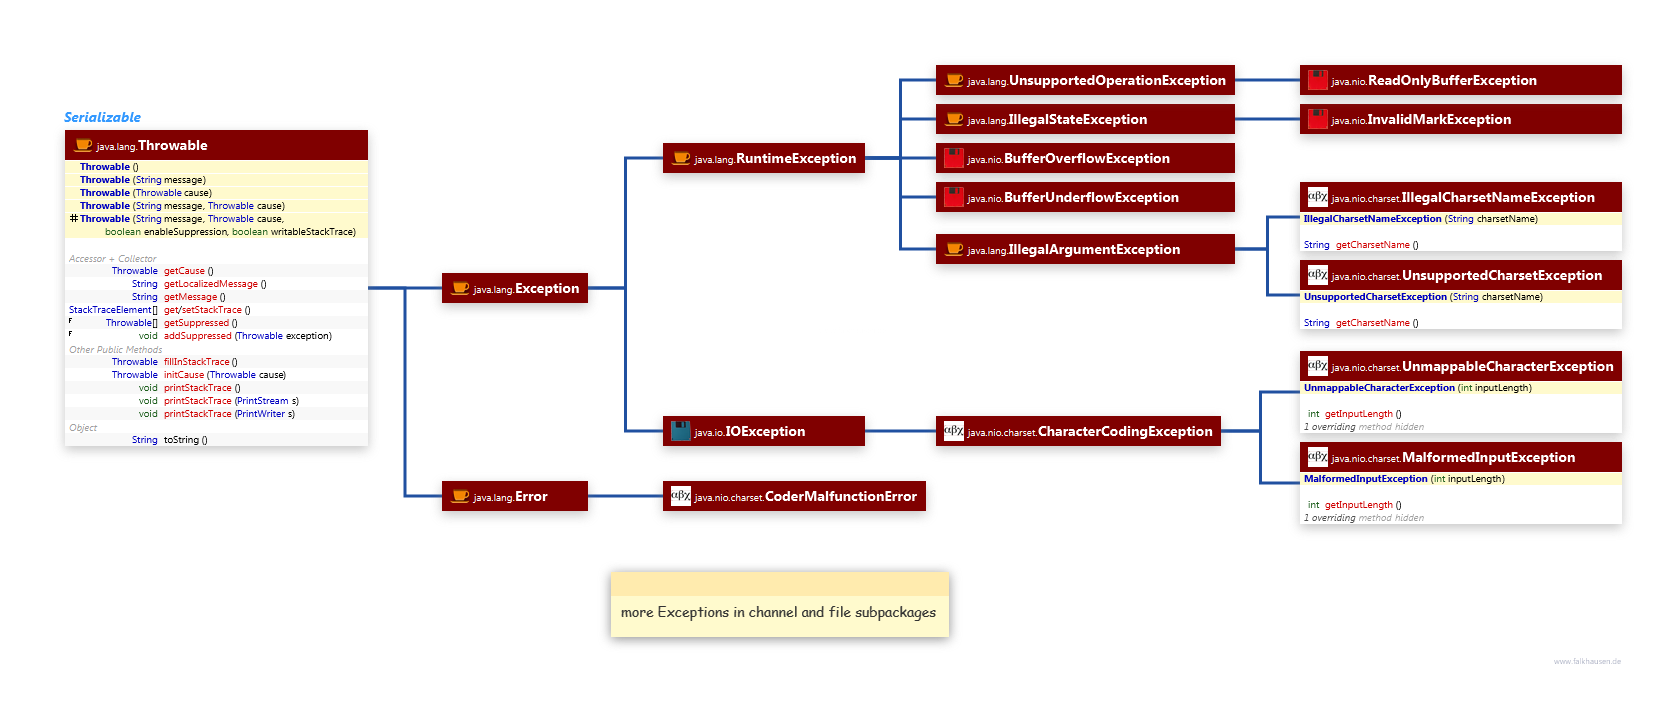 java.nio.channels Exceptions class diagram and api documentation for Java 10